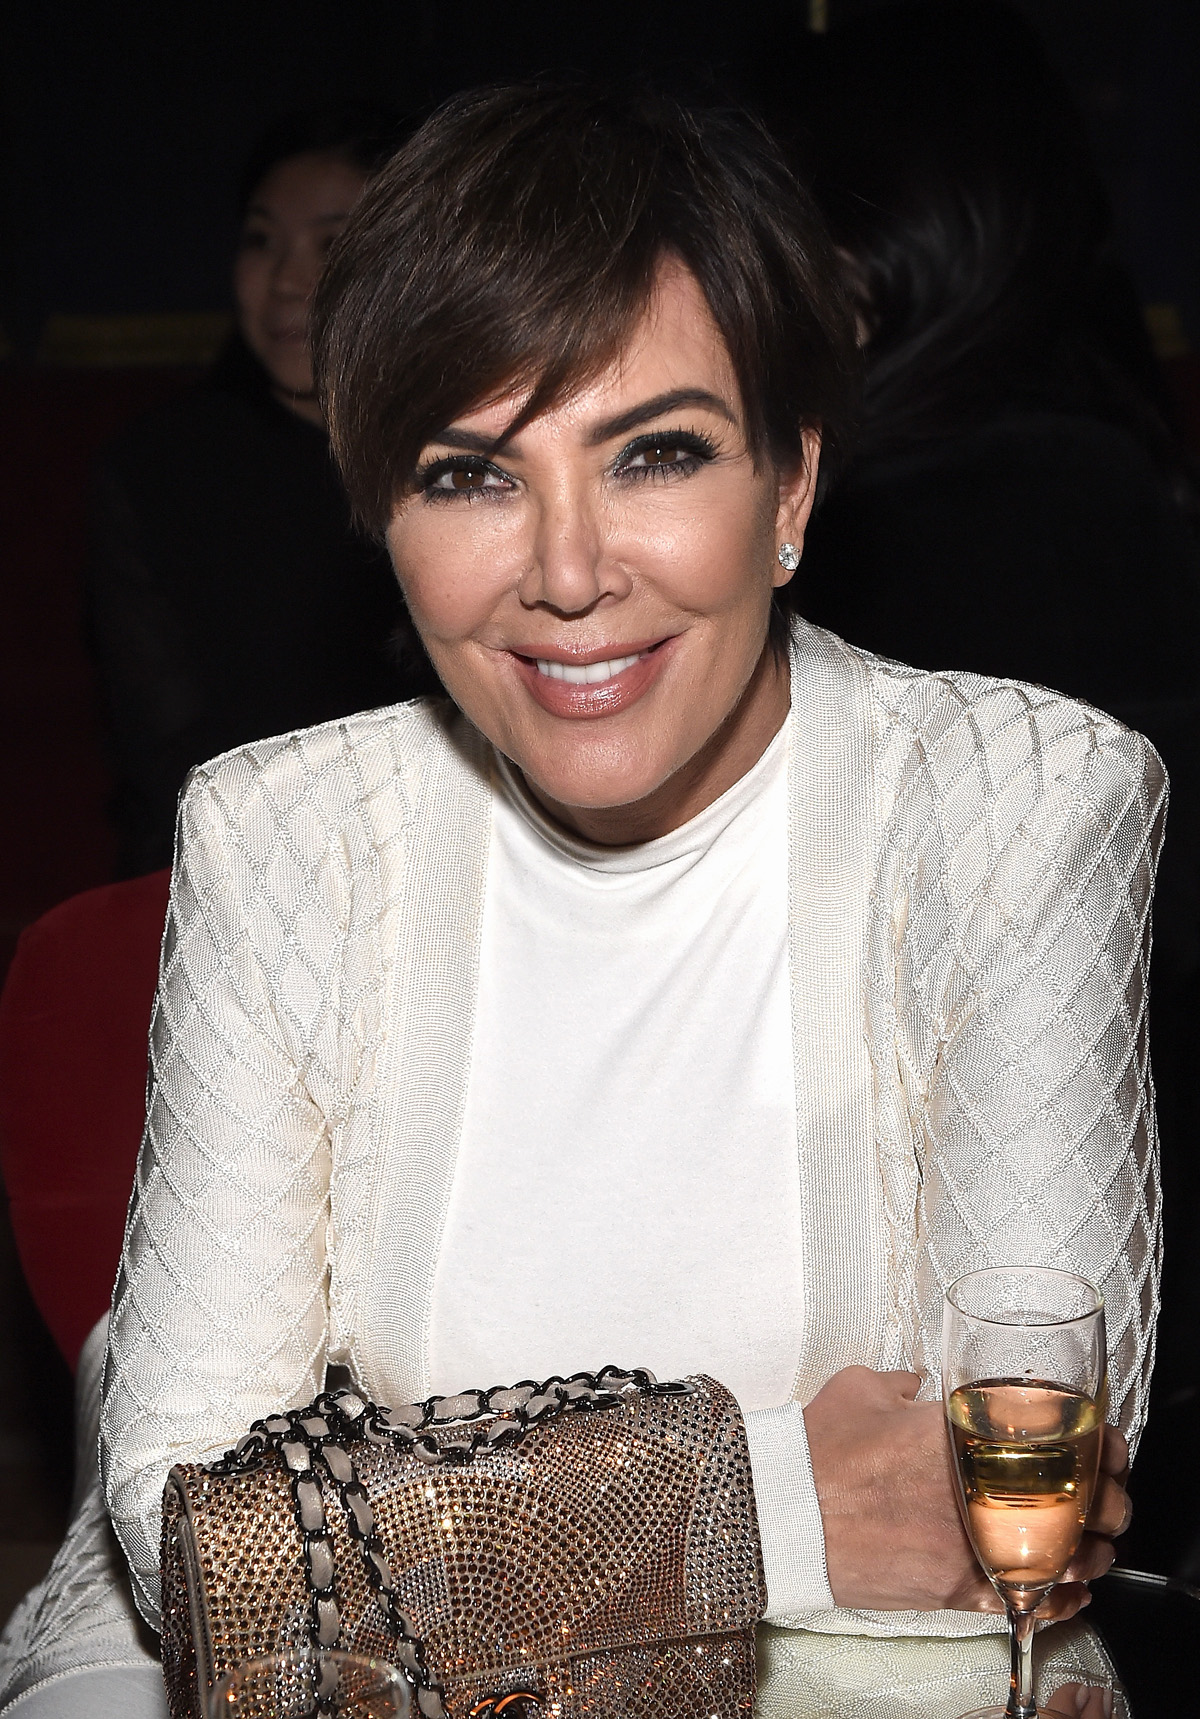 """PARIS, FRANCE - MARCH 03: Kris Jenner attends Balmain Aftershow Party as part of Paris Fashion Week Womenswear Automn/Winter 2016 at Restaurant Laperouse on March 3, 2016 in Paris, France. (Photo by Jacopo Raule/WireImage)"""